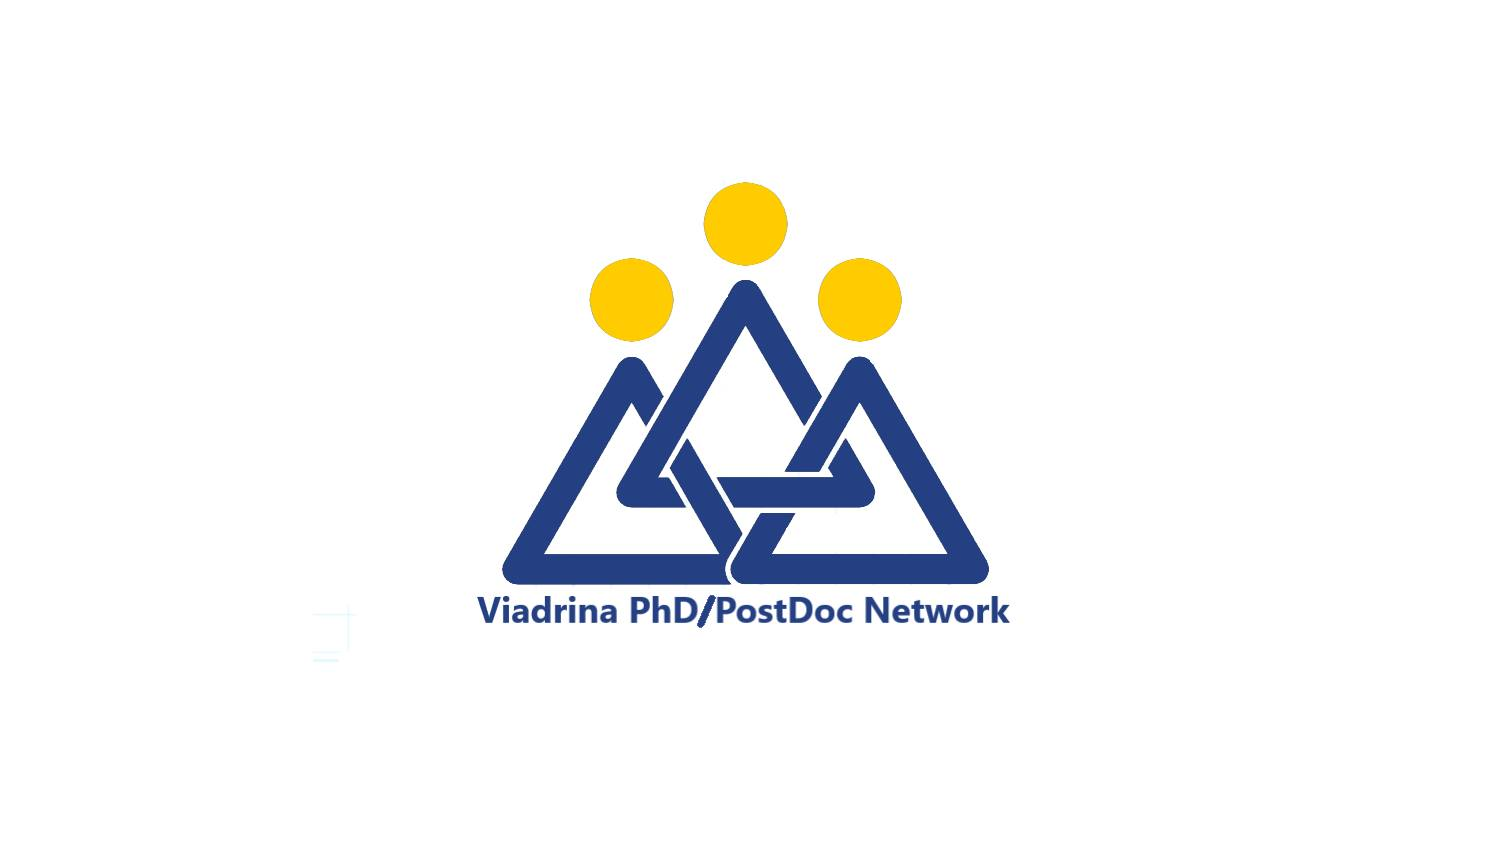 Course Image Viadrina PhD/PostDoc Network